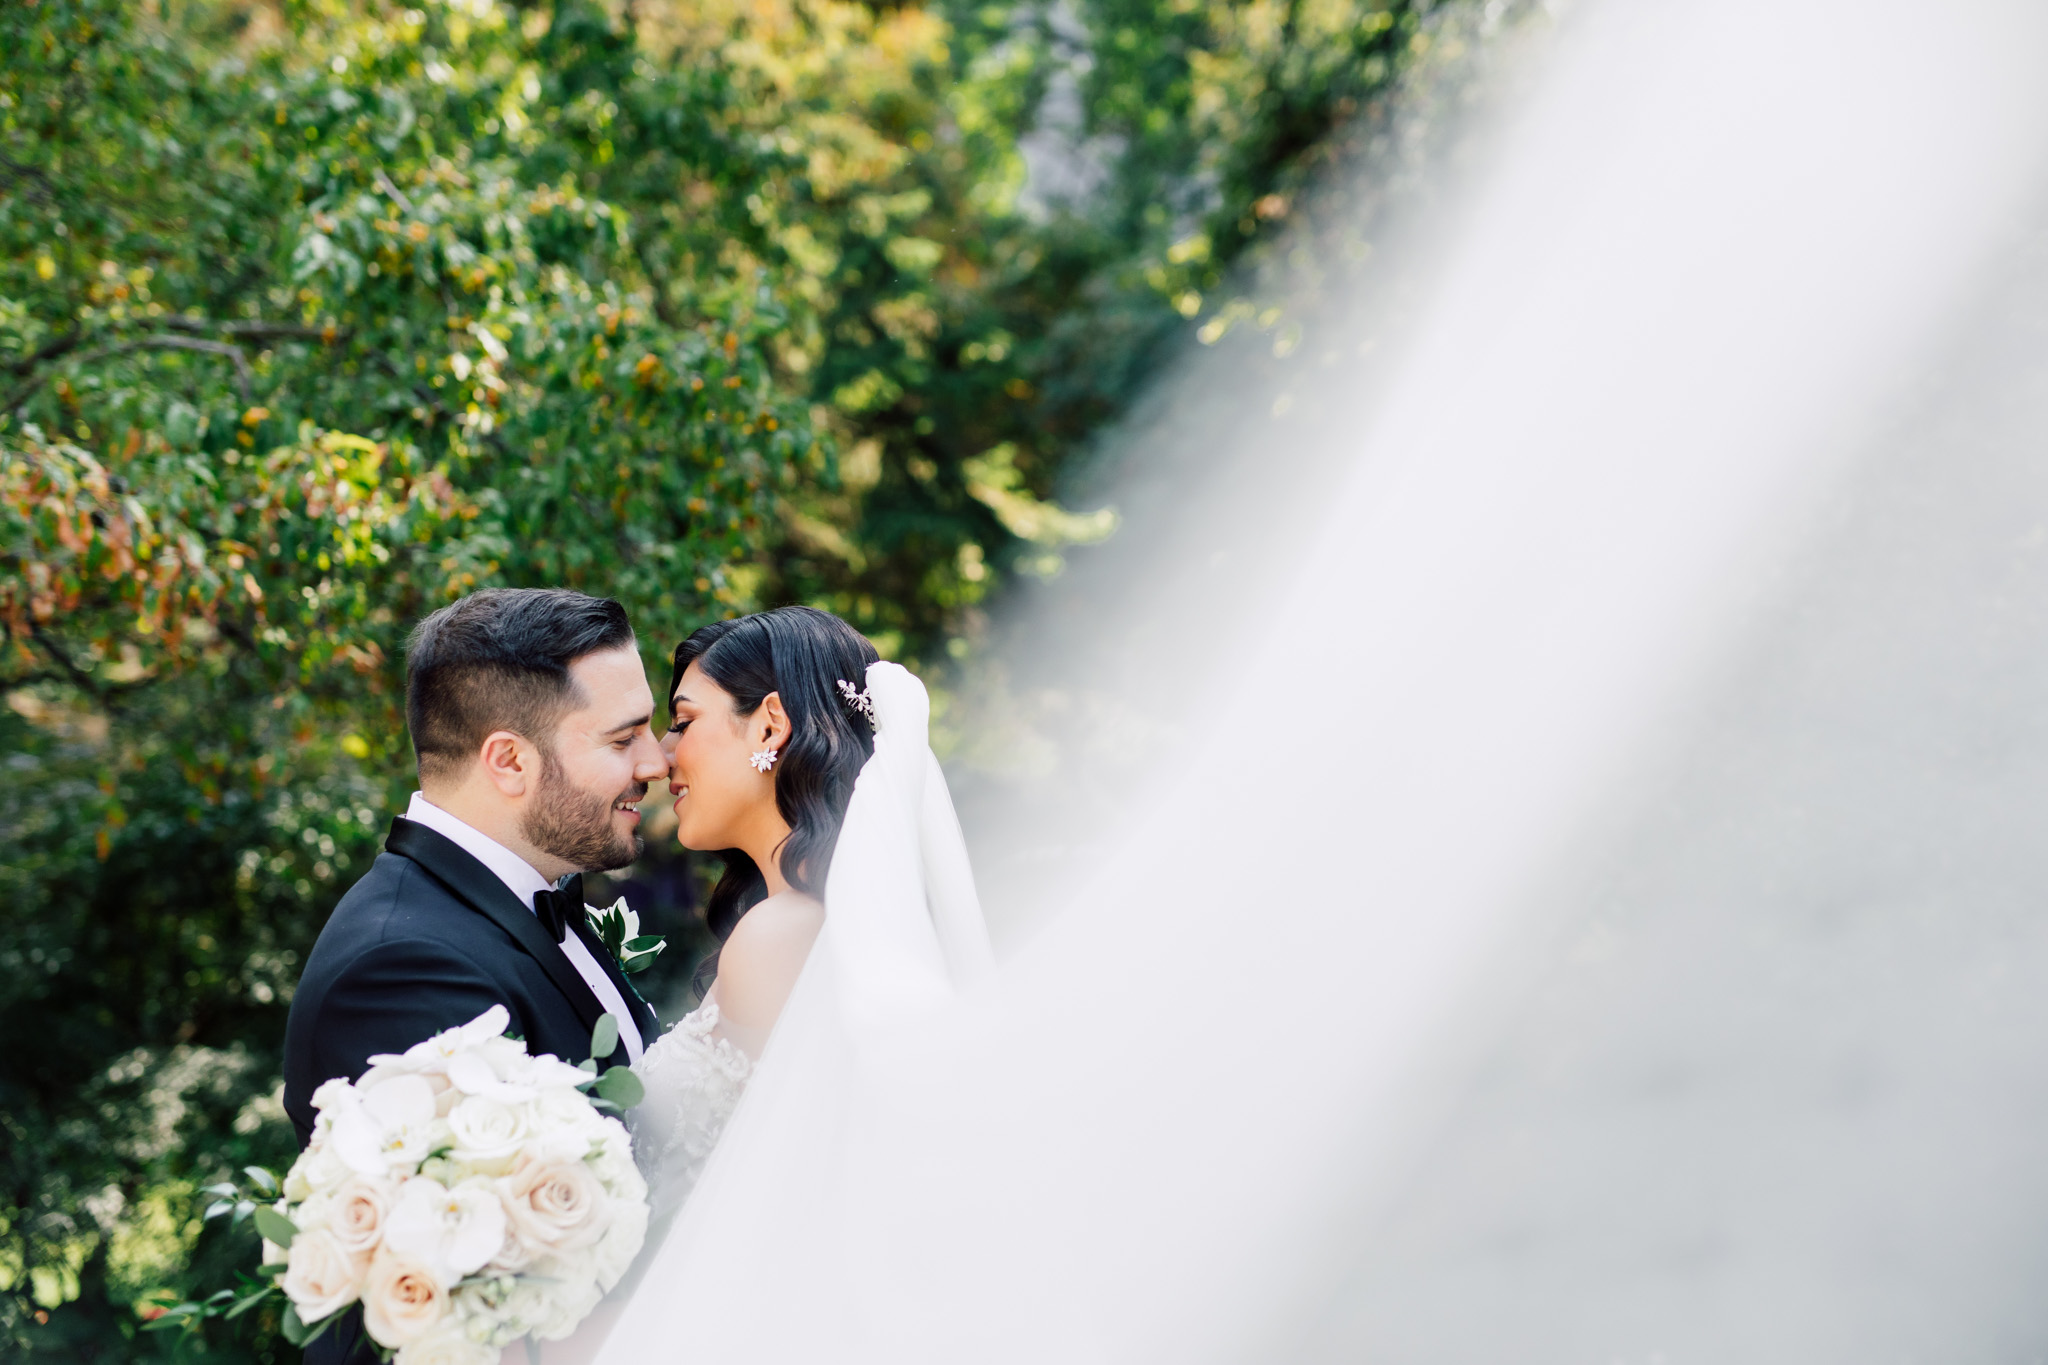 Wedding Photography Locations Toronto